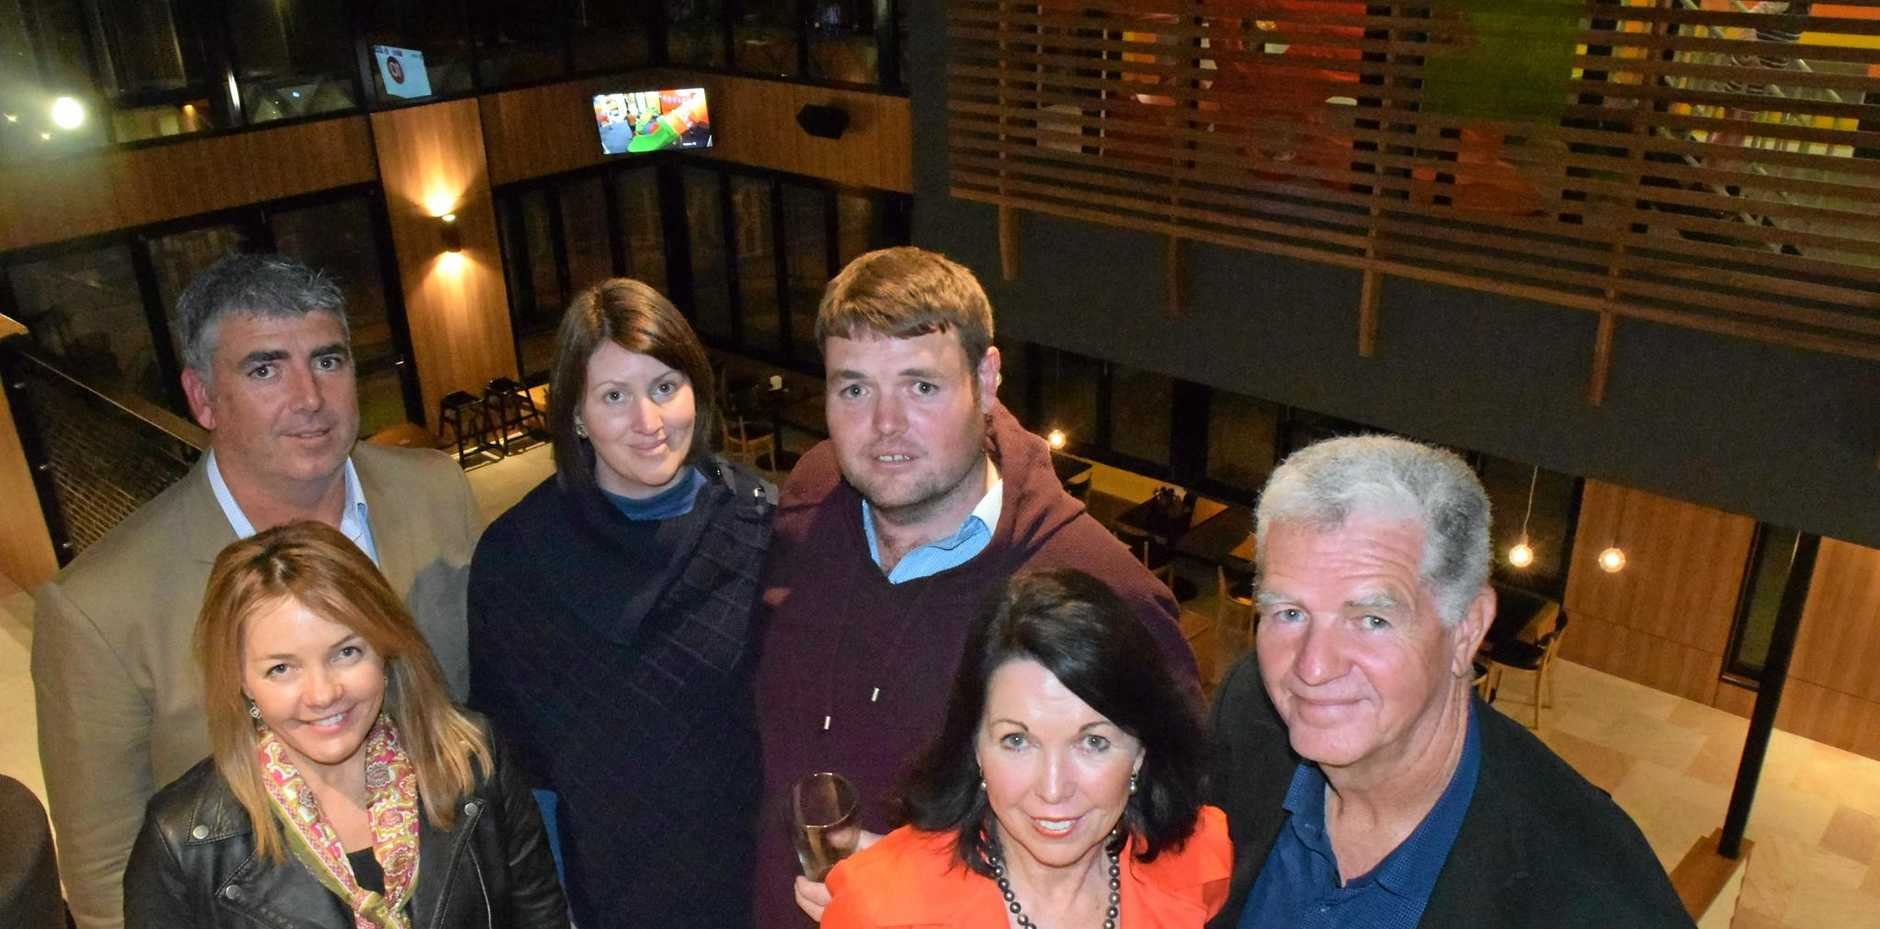 NEW PUB: The Garvie family (Justin, Wendy, Diana, Nathan, Lyn and Bruce) celebrate the soft opening of the Royal on 99 on Friday night to thank the contractors and workers who helped build it.